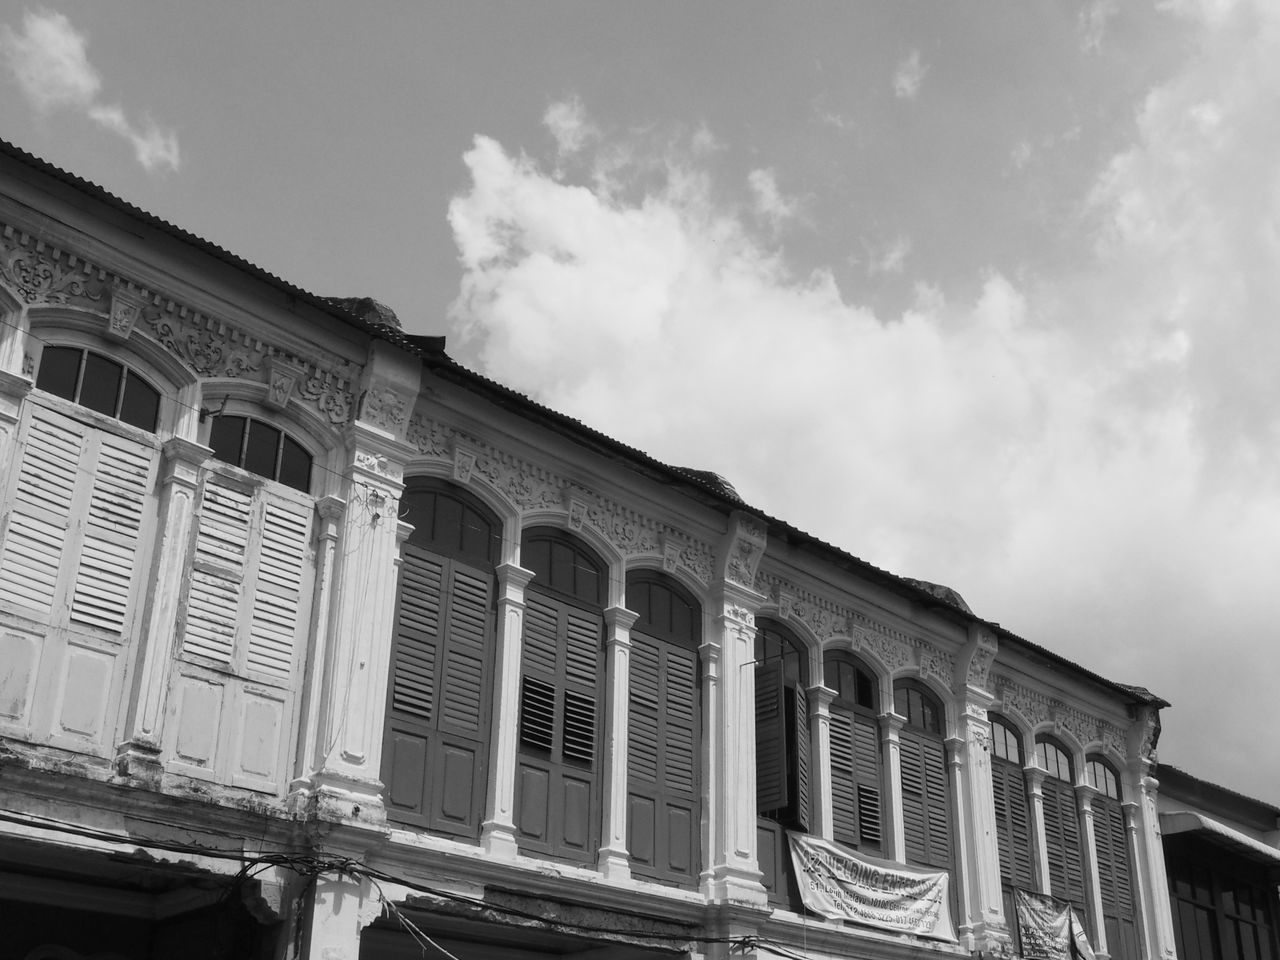 Architecture Building Exterior Built Structure Exterior Low Angle View Old Buildings Old Shop Outdoors Penang Malaysia Penang Old Building Shutter Therapy Street Photography Streetphotography